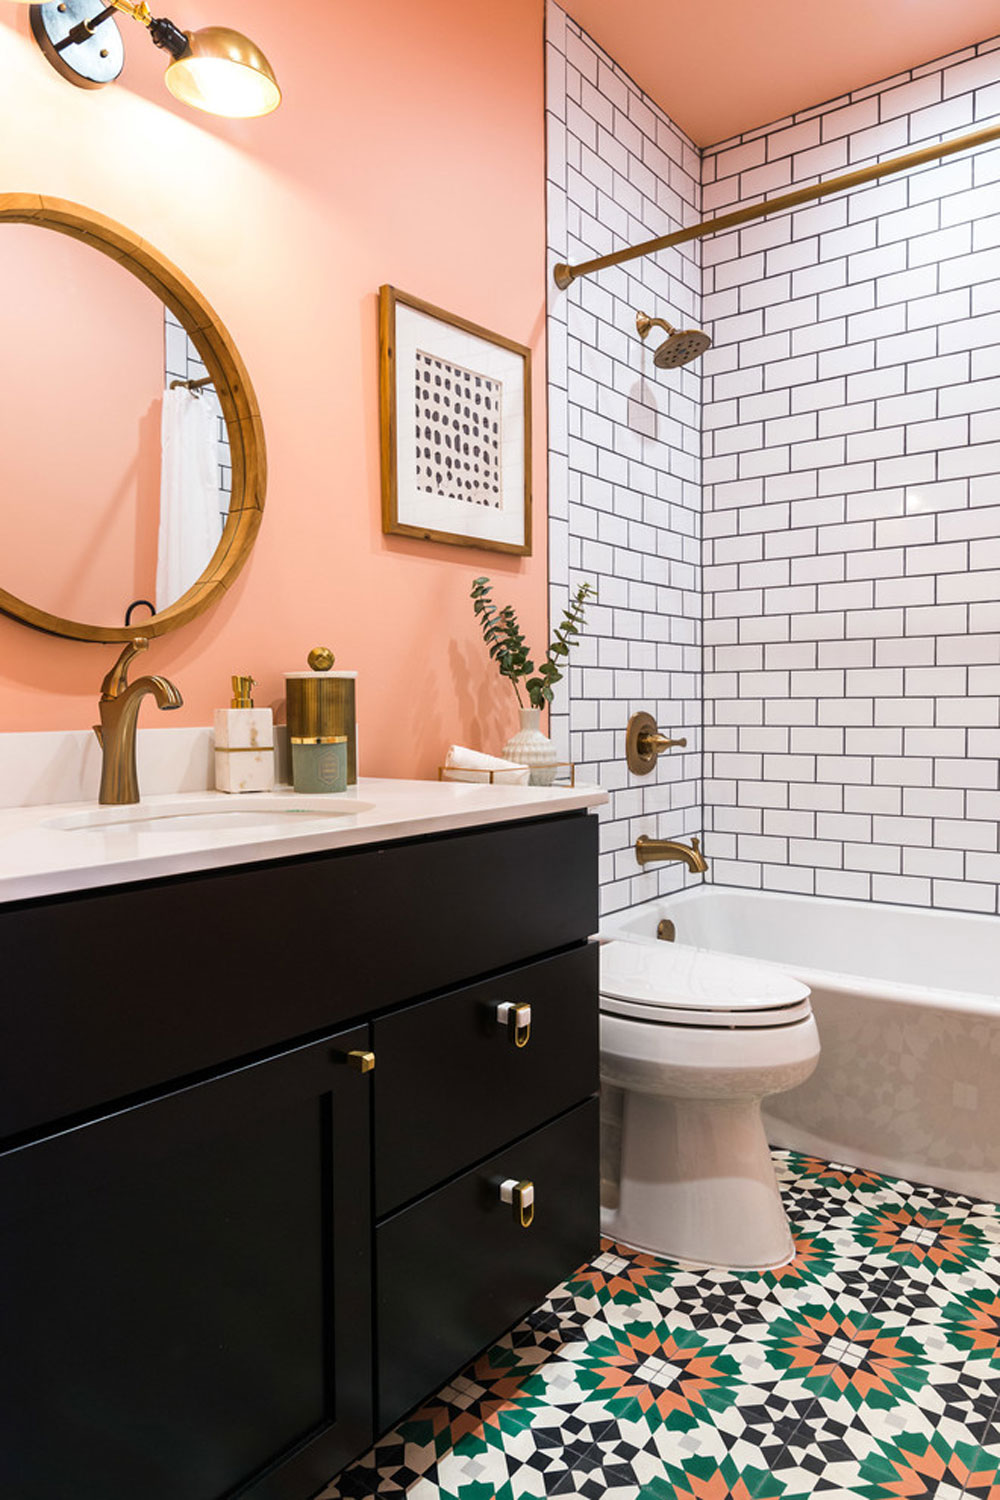 Peach Color To Decorate Amazing Interiors, What Color Goes With Peach Bathroom